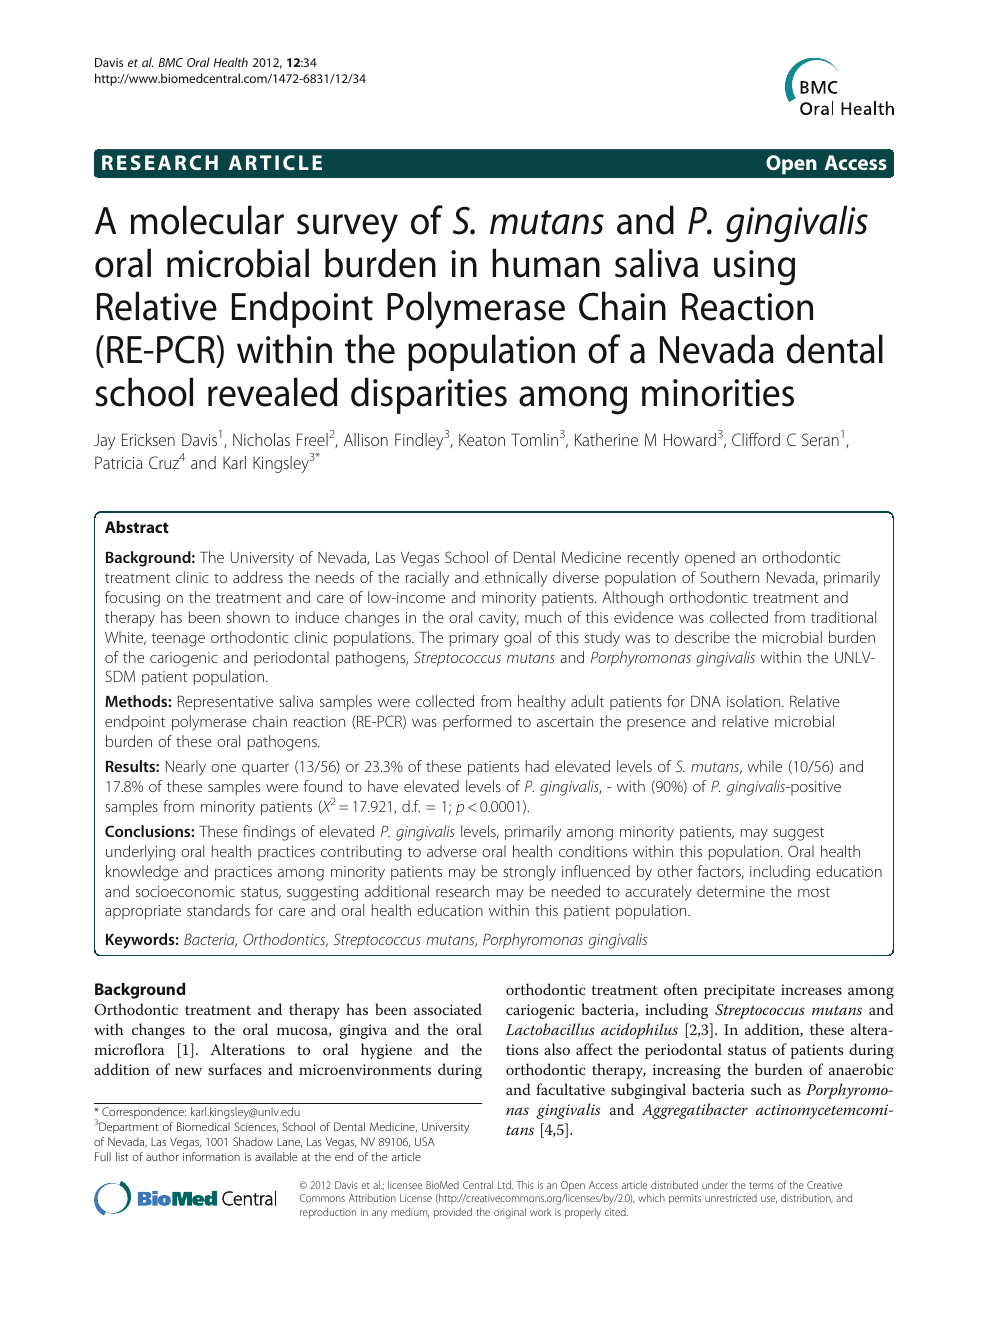 A molecular survey of S  mutans and P  gingivalis oral